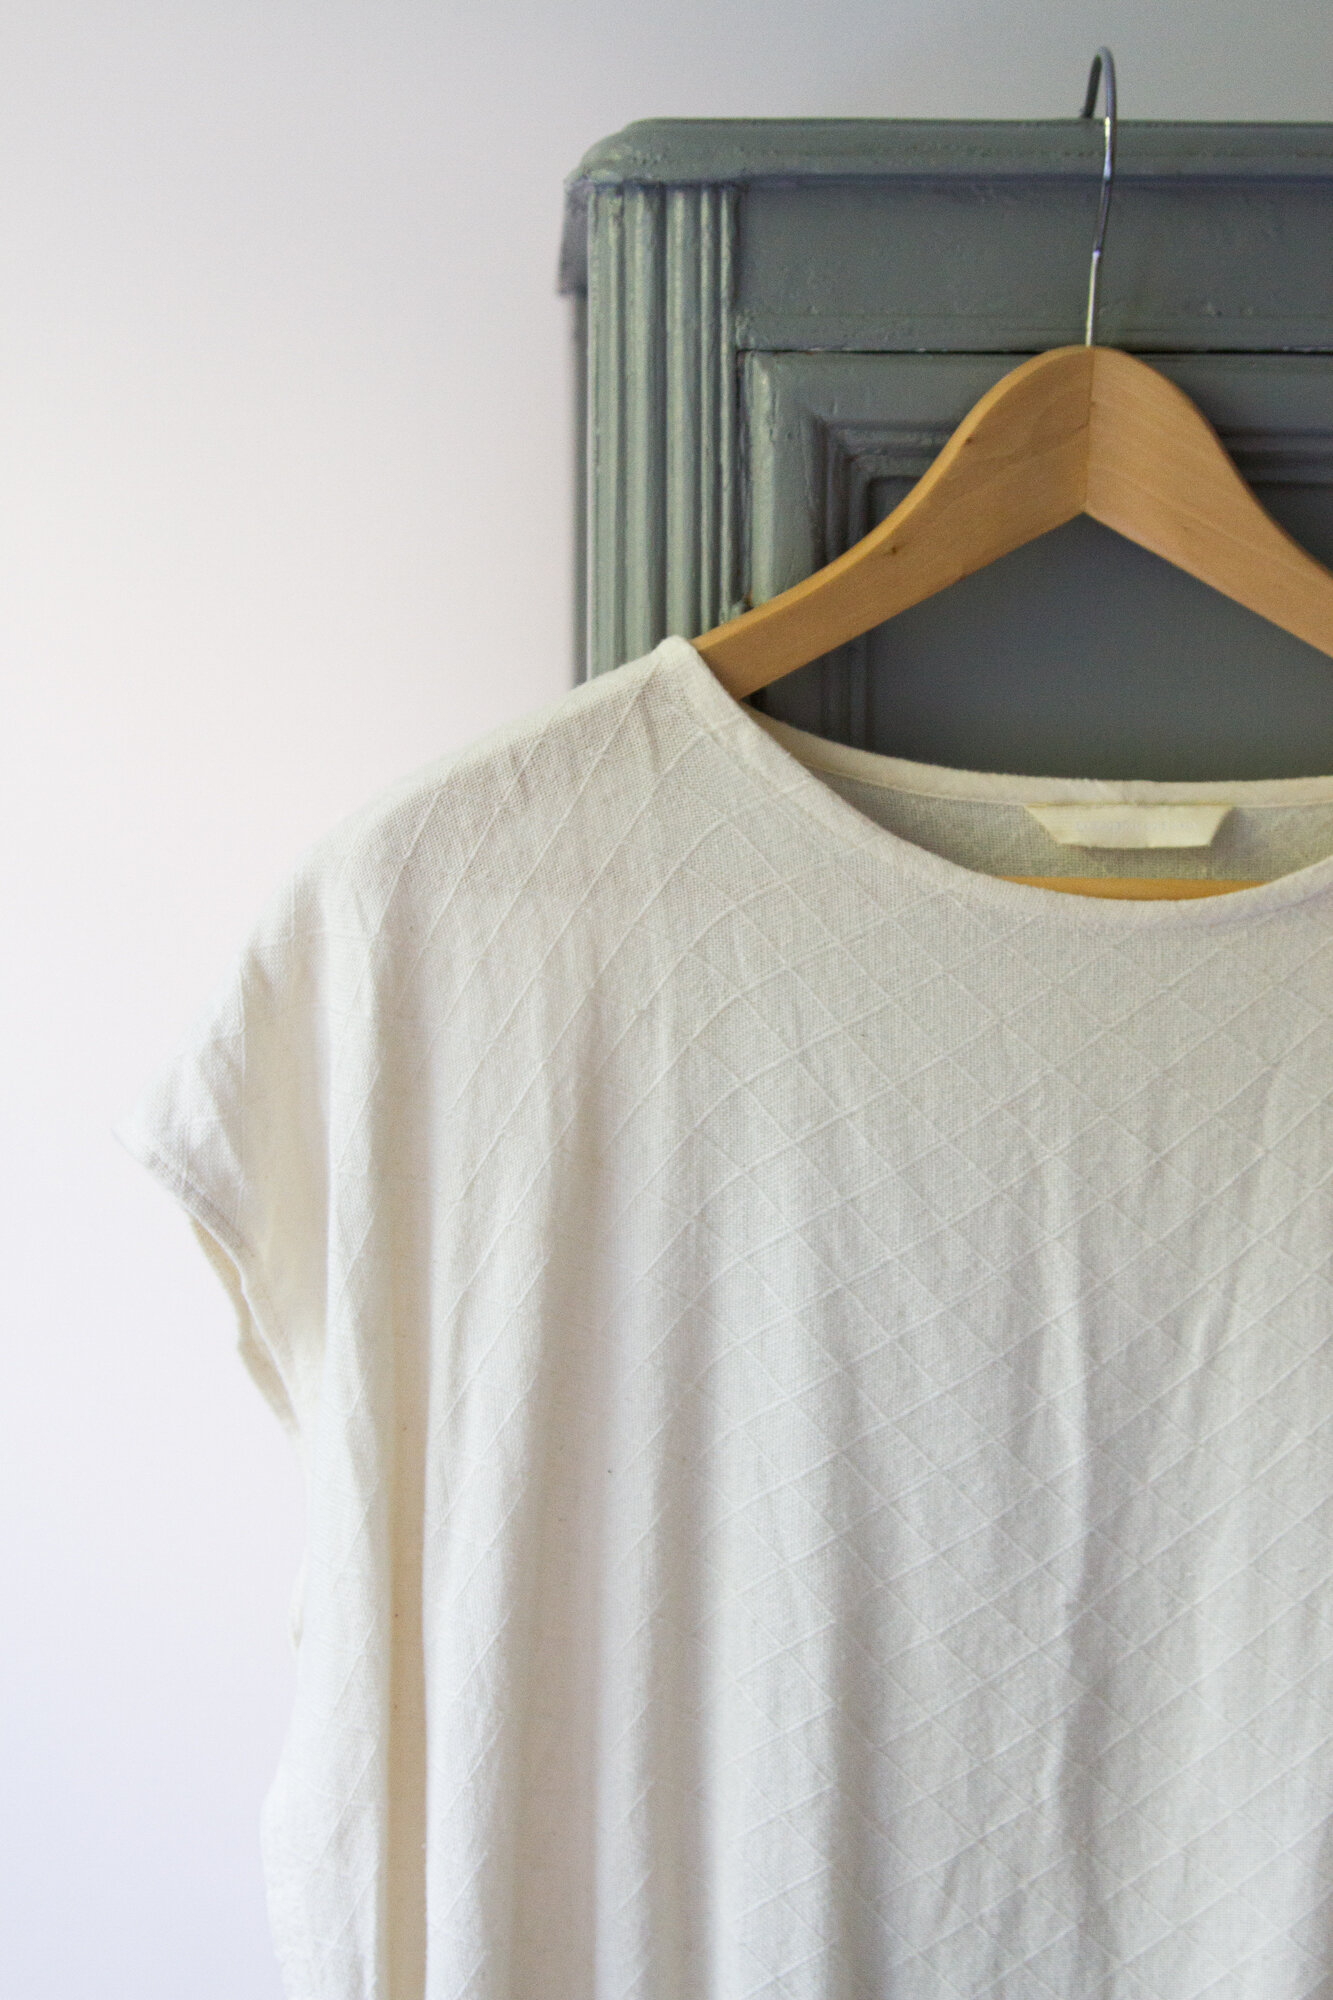 secondhand sustainable fashion | reading my tea leaves